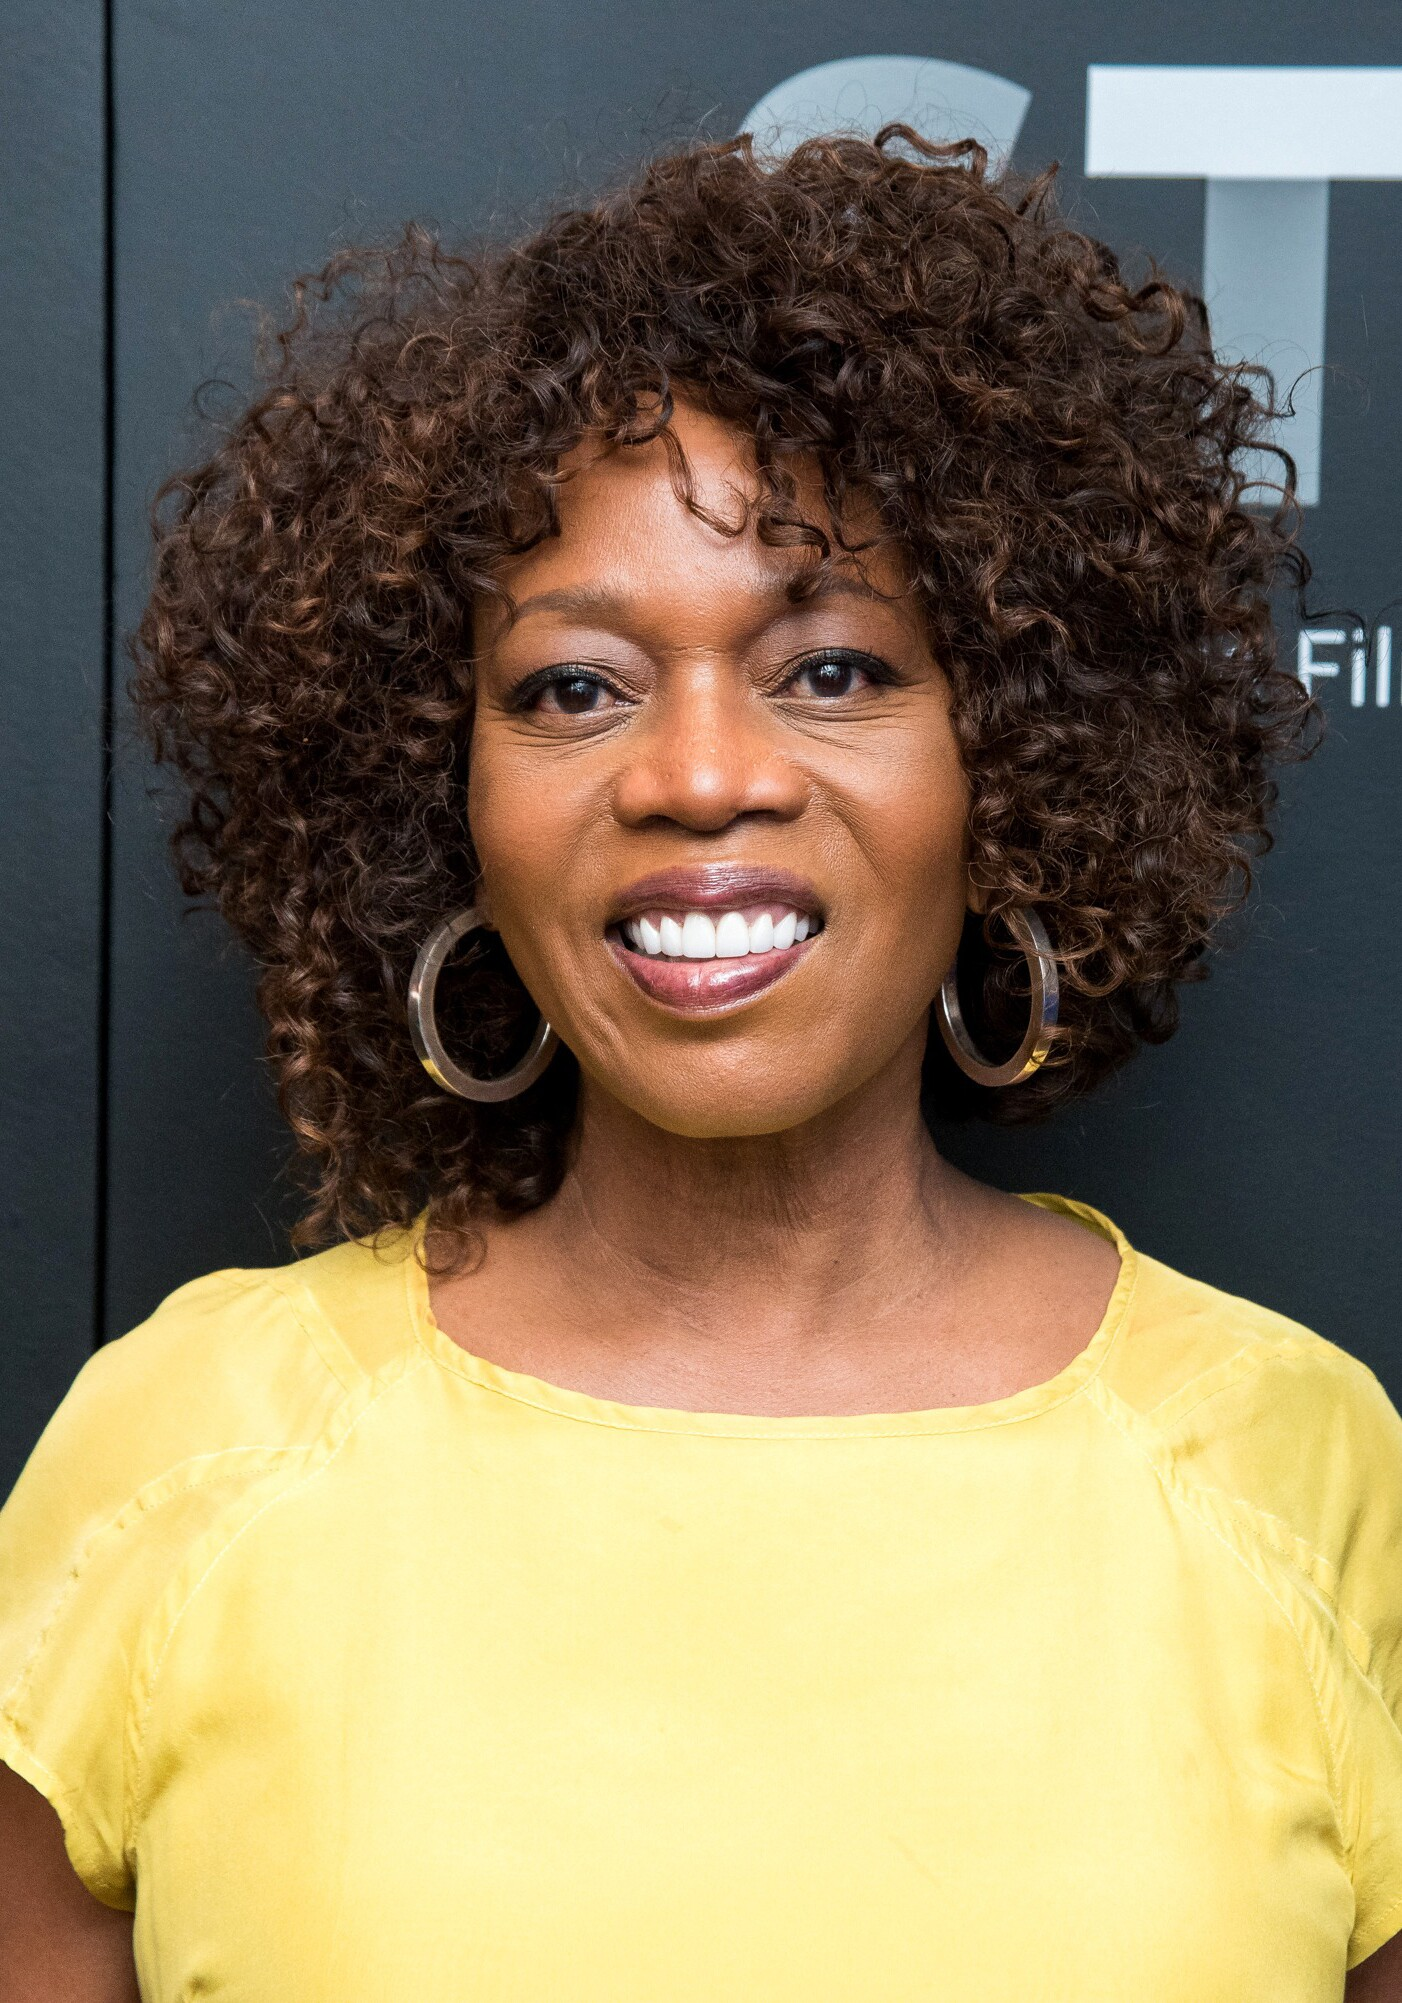 AARP, Sisters, Hoop Earrings, Alfre Woodard